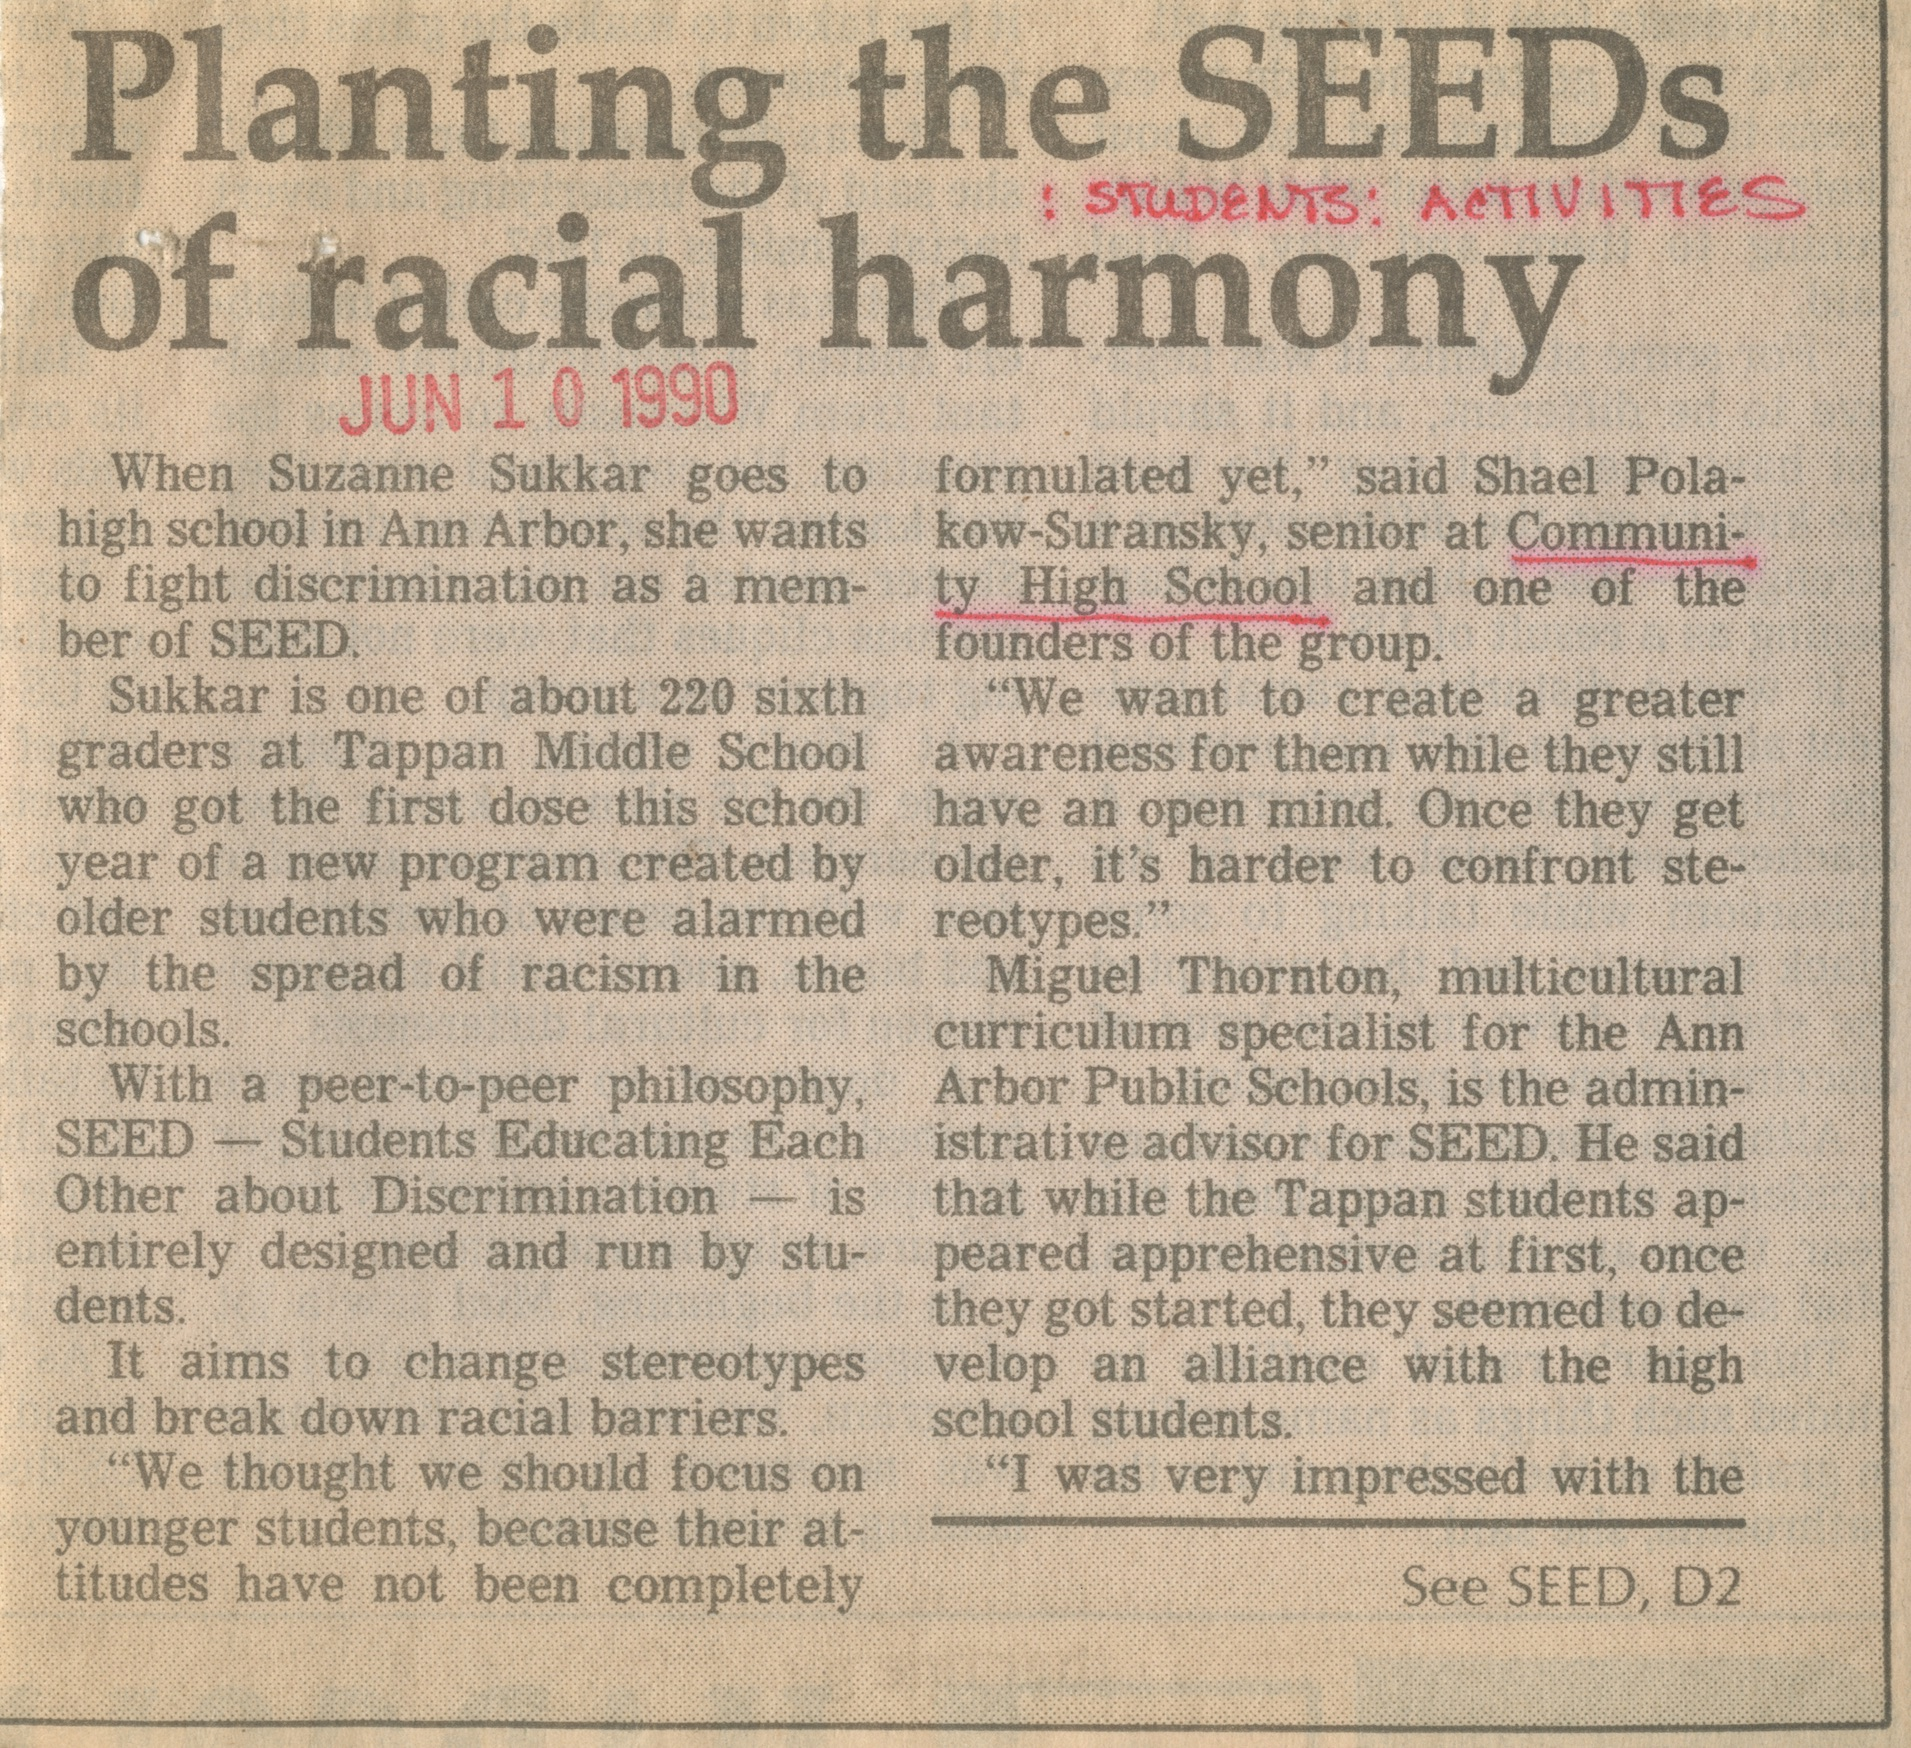 Planting the SEEDS of Racial Harmony image